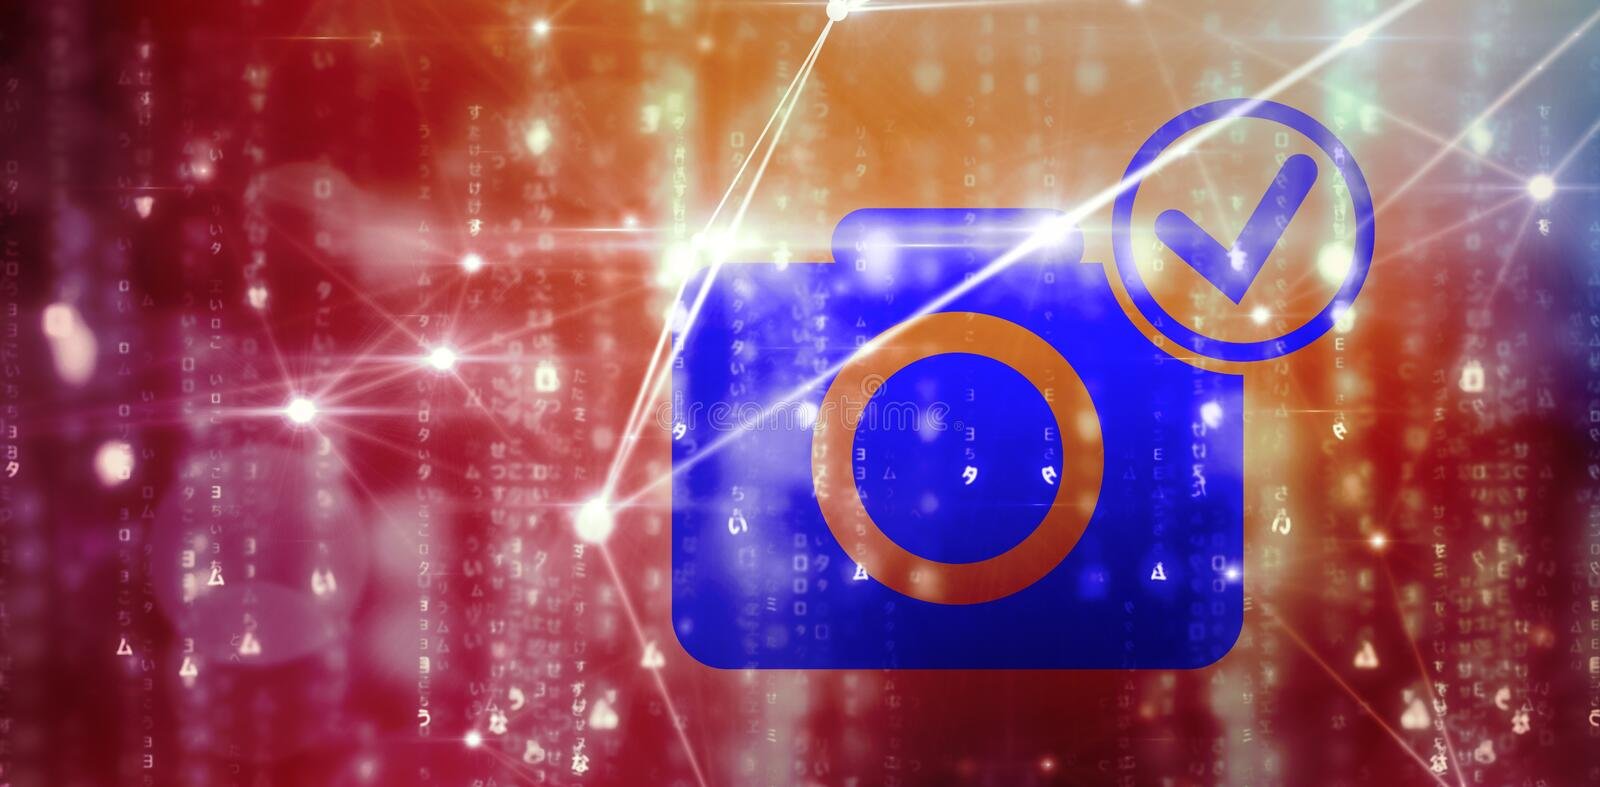 Composite image of digital 3d camera with tick symbol vector illustration